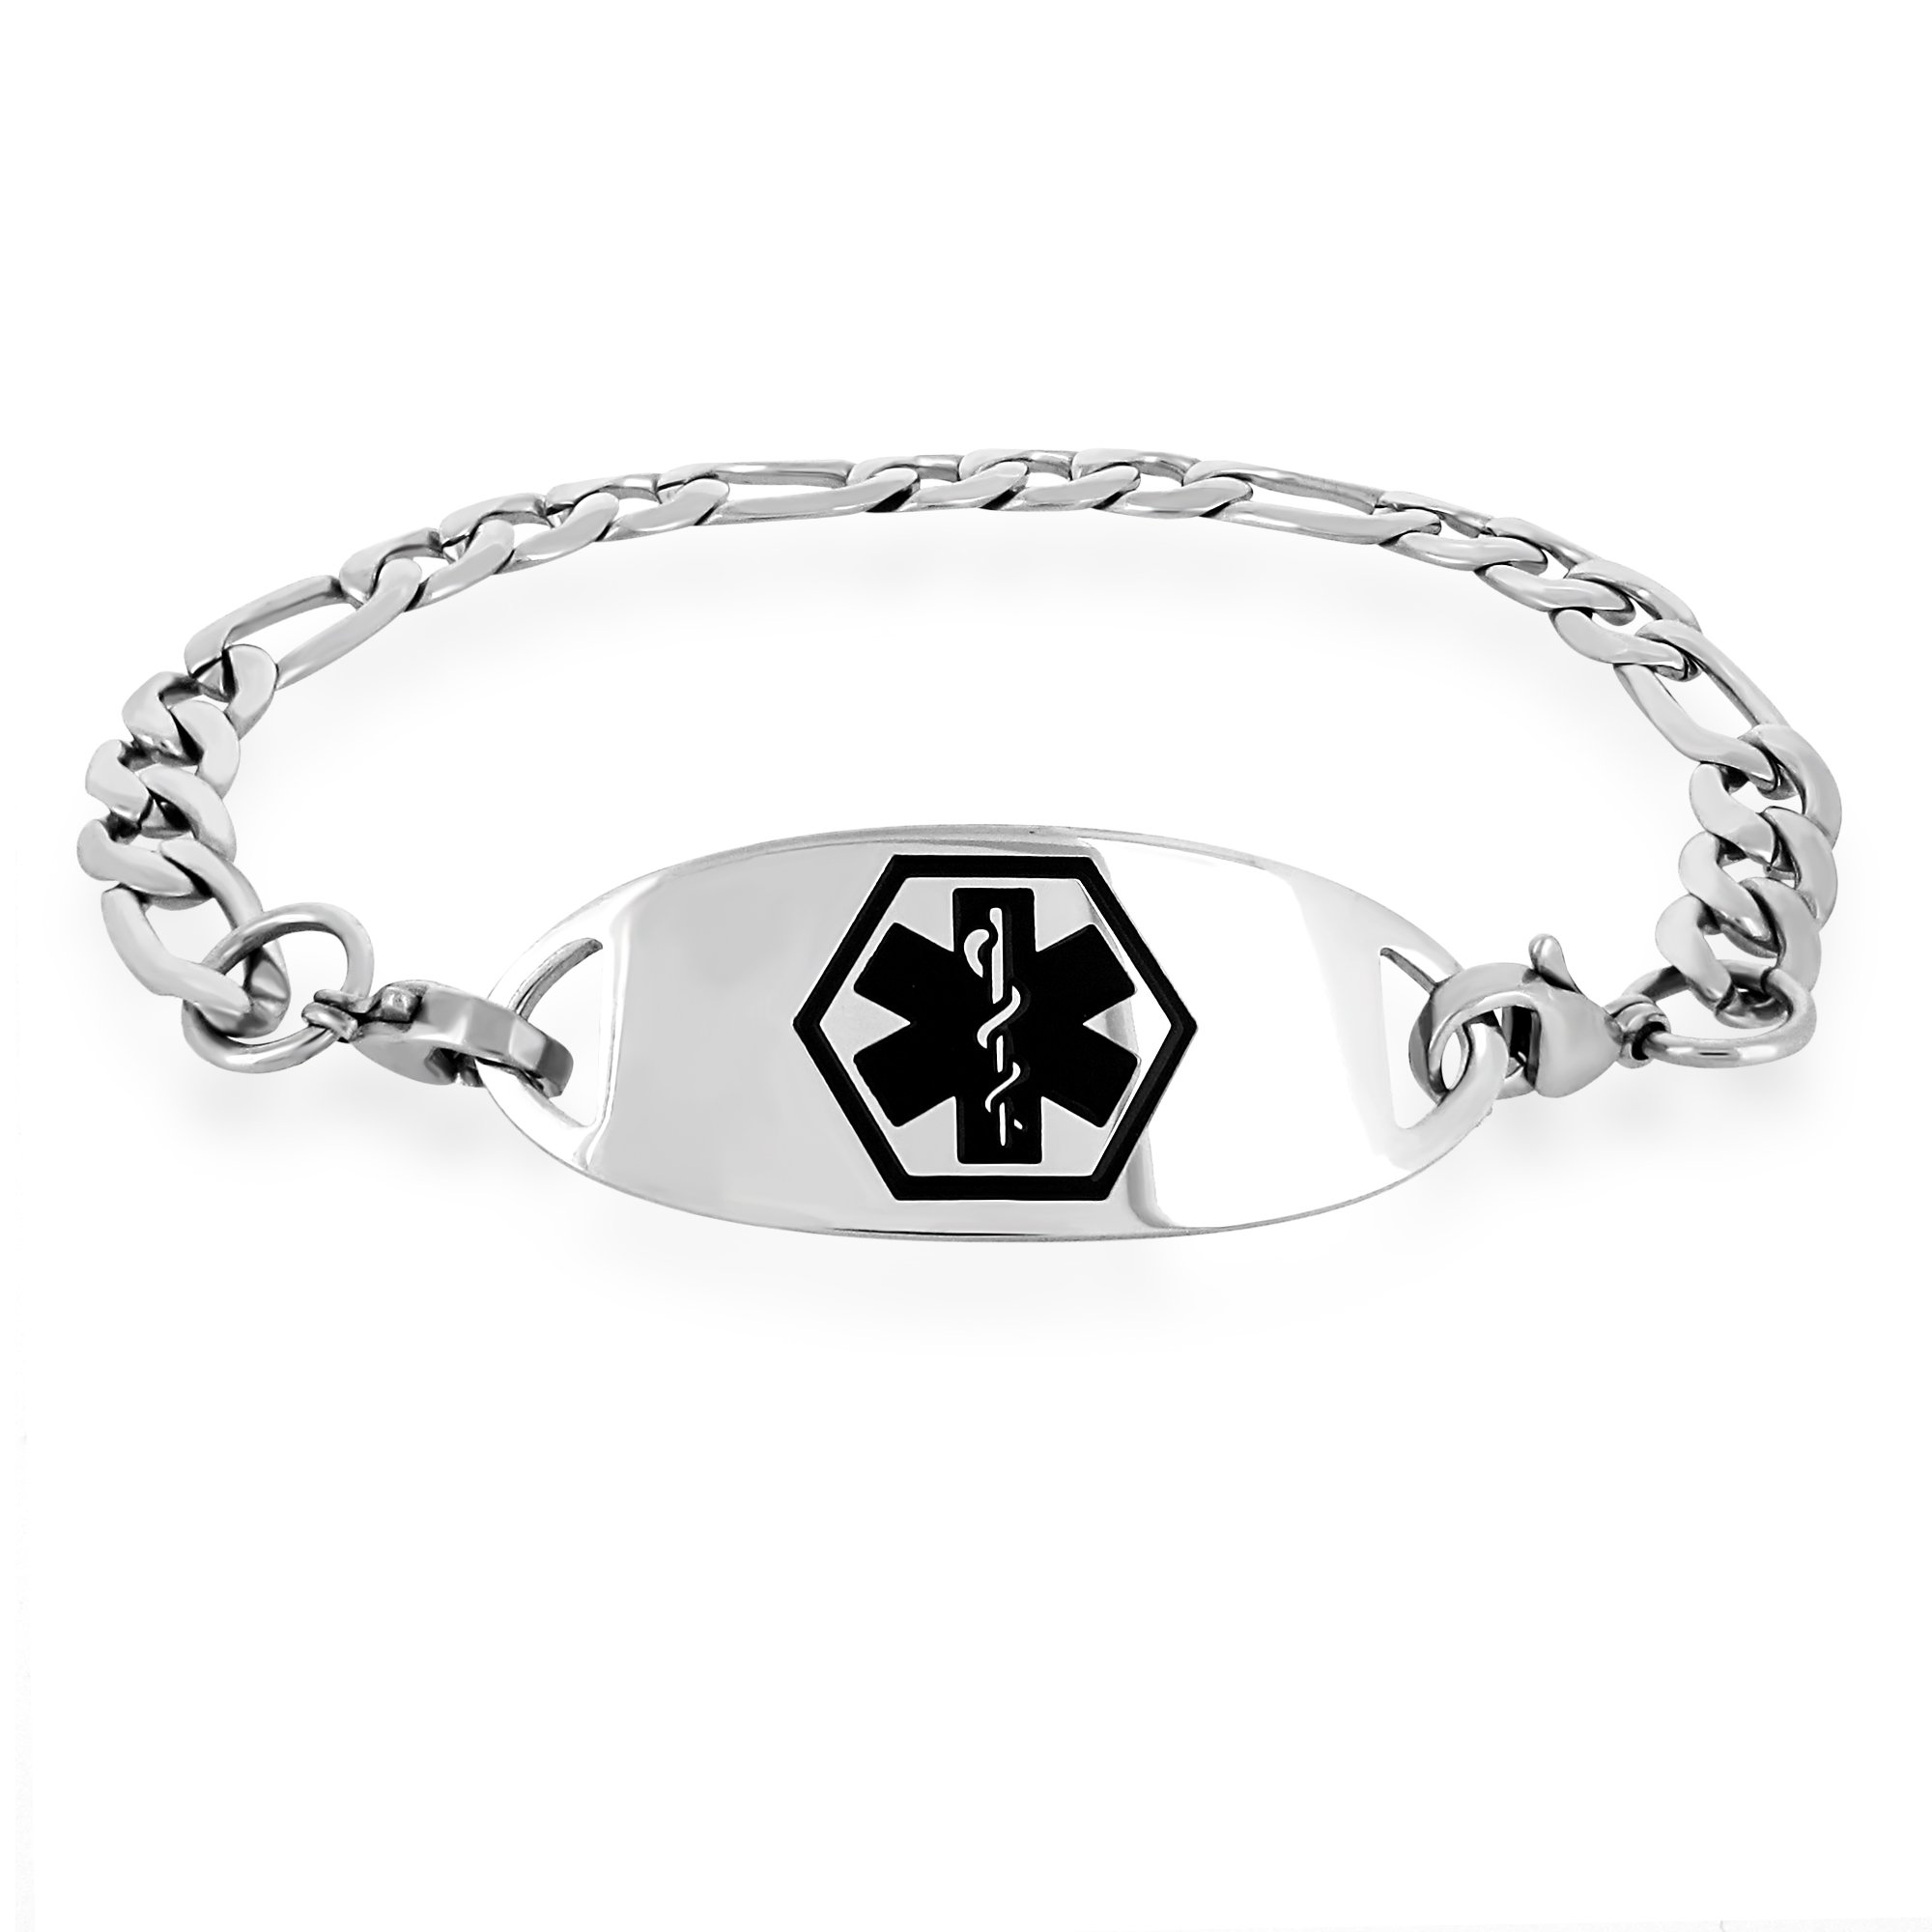 alert choose steel products x bracelet curb your shop seizure data size xx stainless engraving and universal ladies custom medical link plate